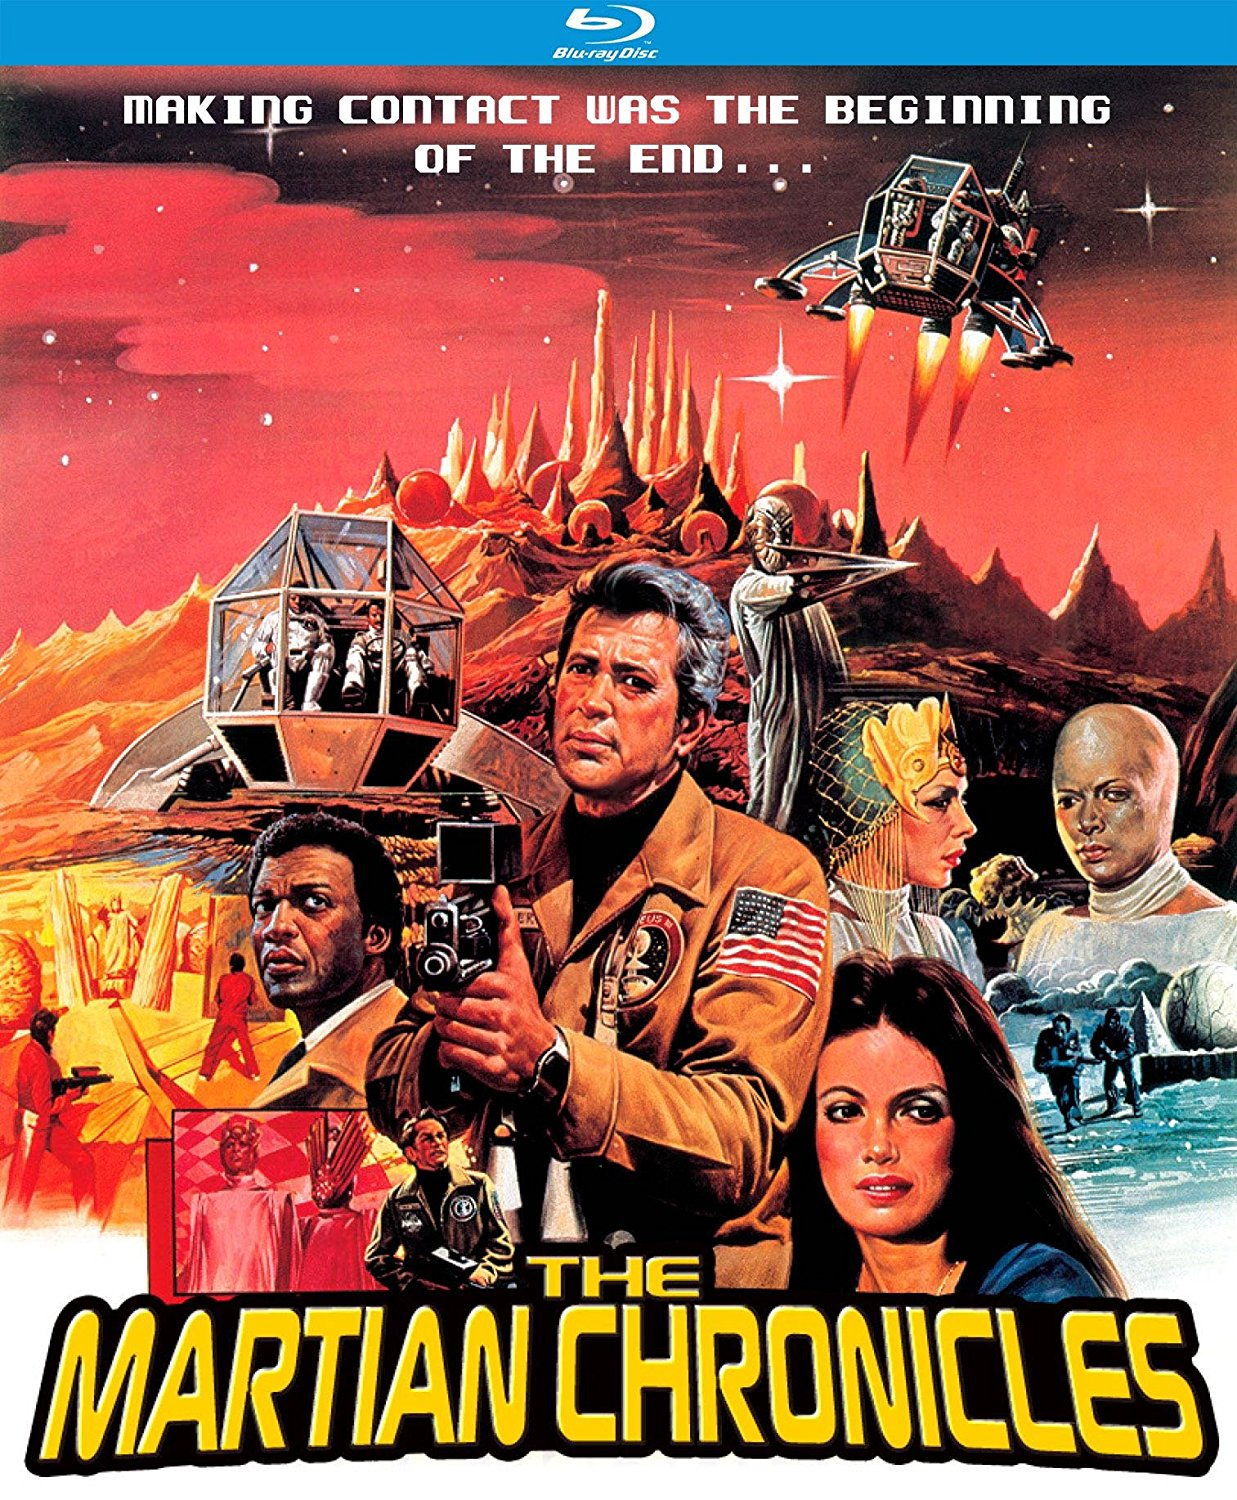 the martian chronicles  1980  kino lorber blu ray review